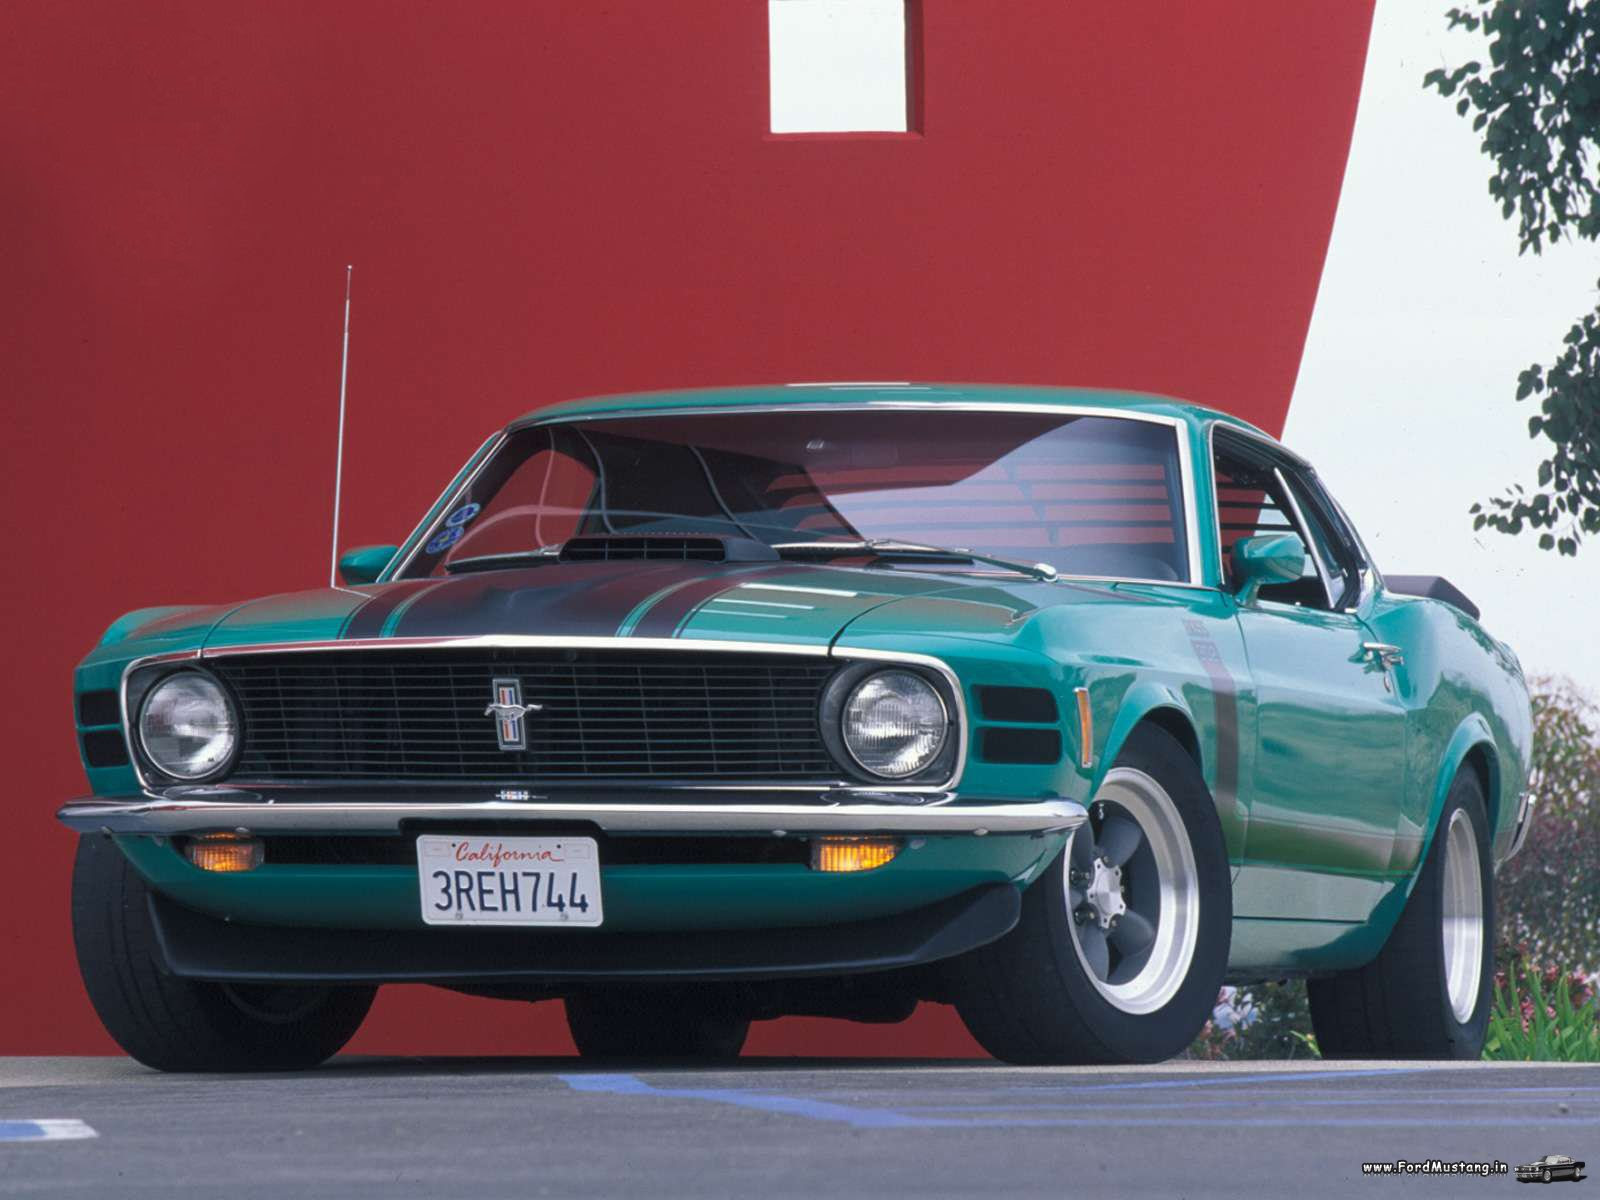 Ford Mustang Boss 302 (1970)